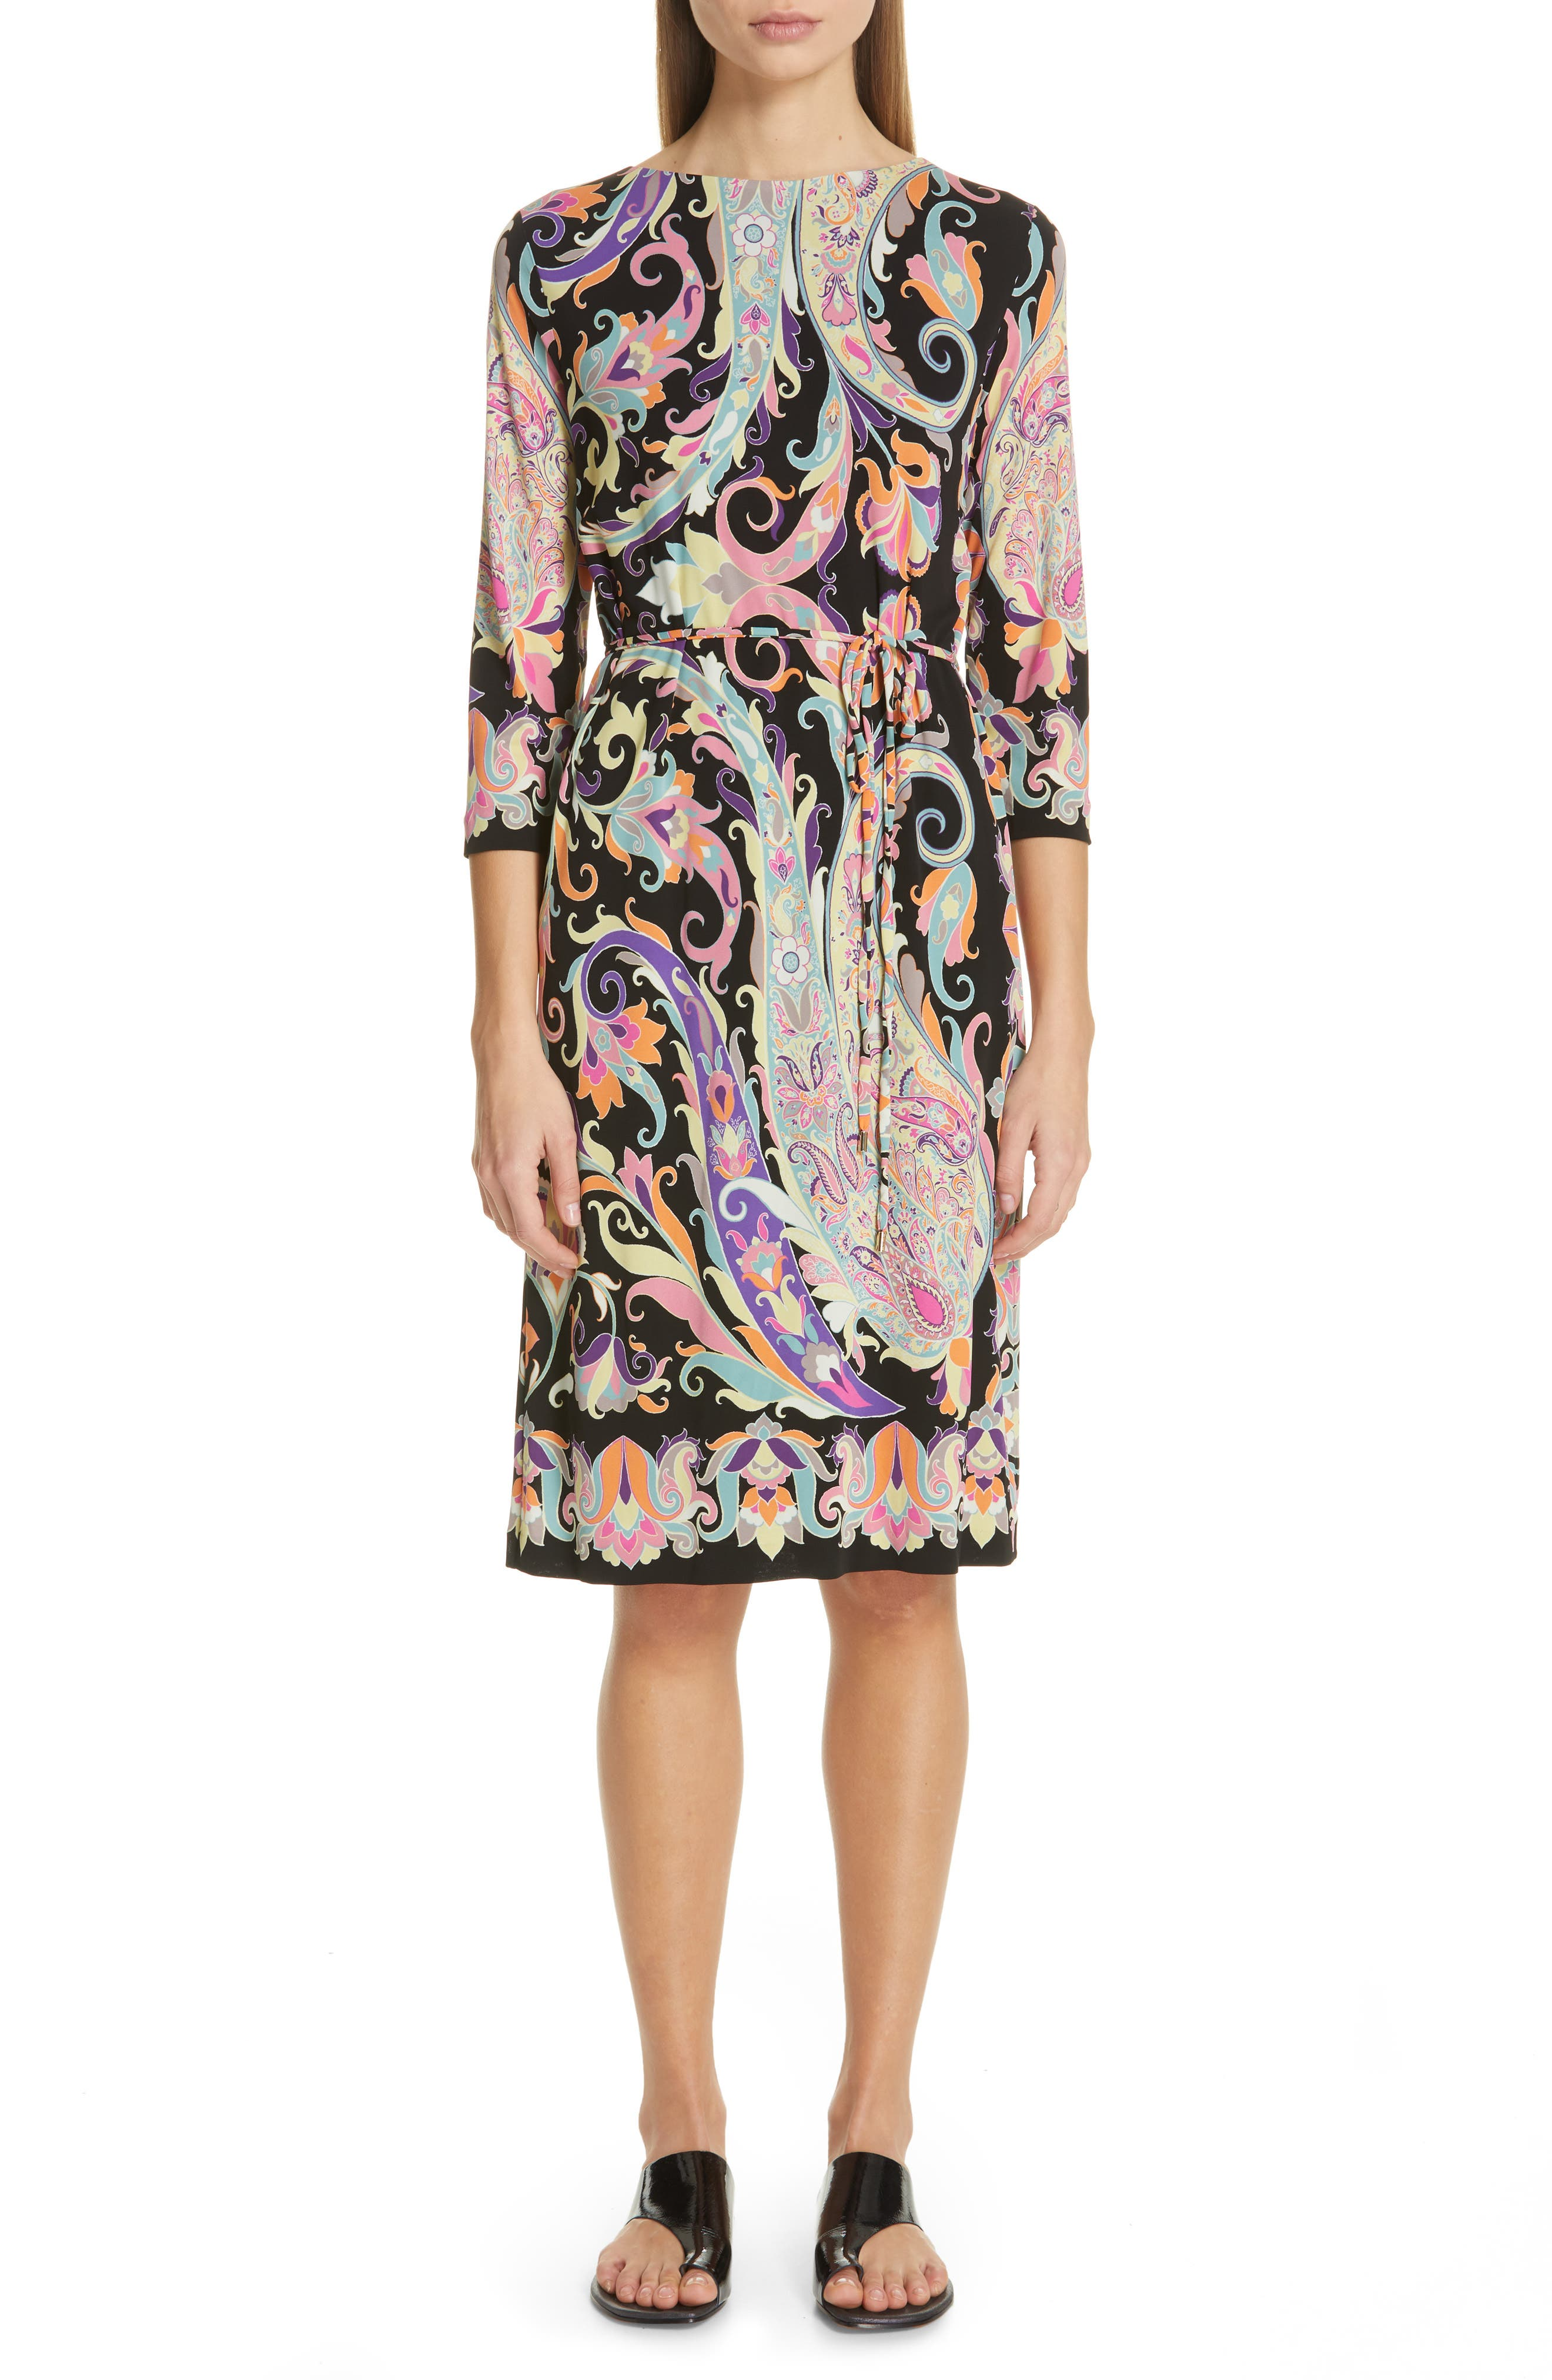 1960s – 70s Cocktail, Party, Prom, Evening Dresses Womens Etro Swirl Print Jersey Dress Size 6 US  42 IT - Black $328.49 AT vintagedancer.com